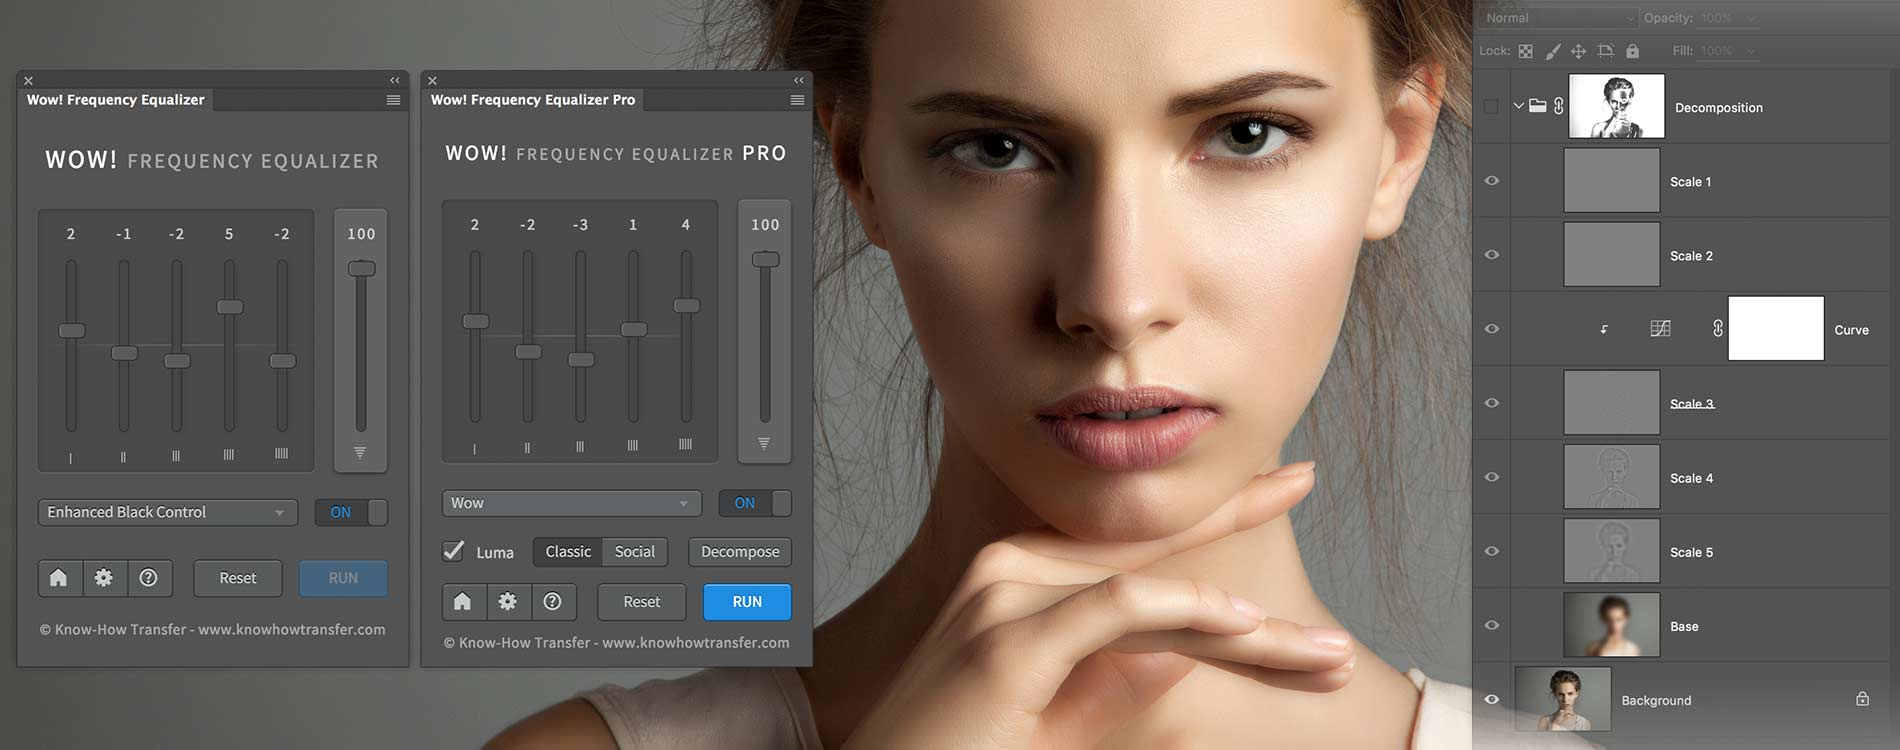 Wow Frequency Equalizer Classic and Pro Edition panel and decompose window and a woman portaitBeauty Shot Tuned by Wow Frequency Equalizer